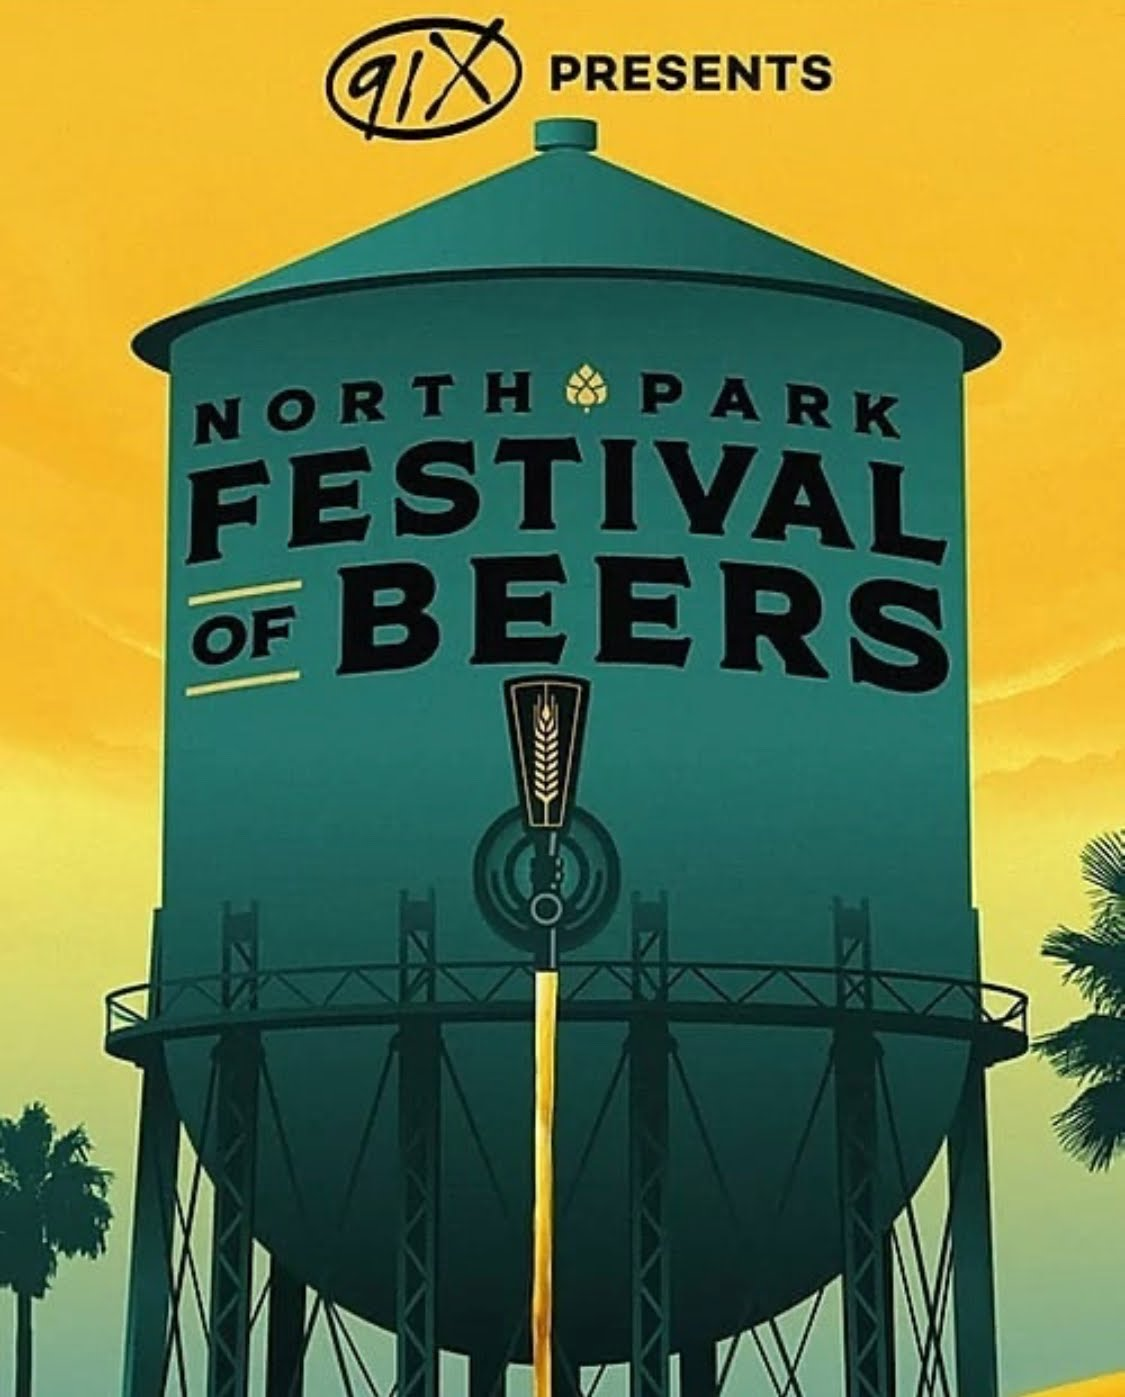 Promo code SDVILLE saves $5 per ticket to the North Park Festival of Beers - August 1!